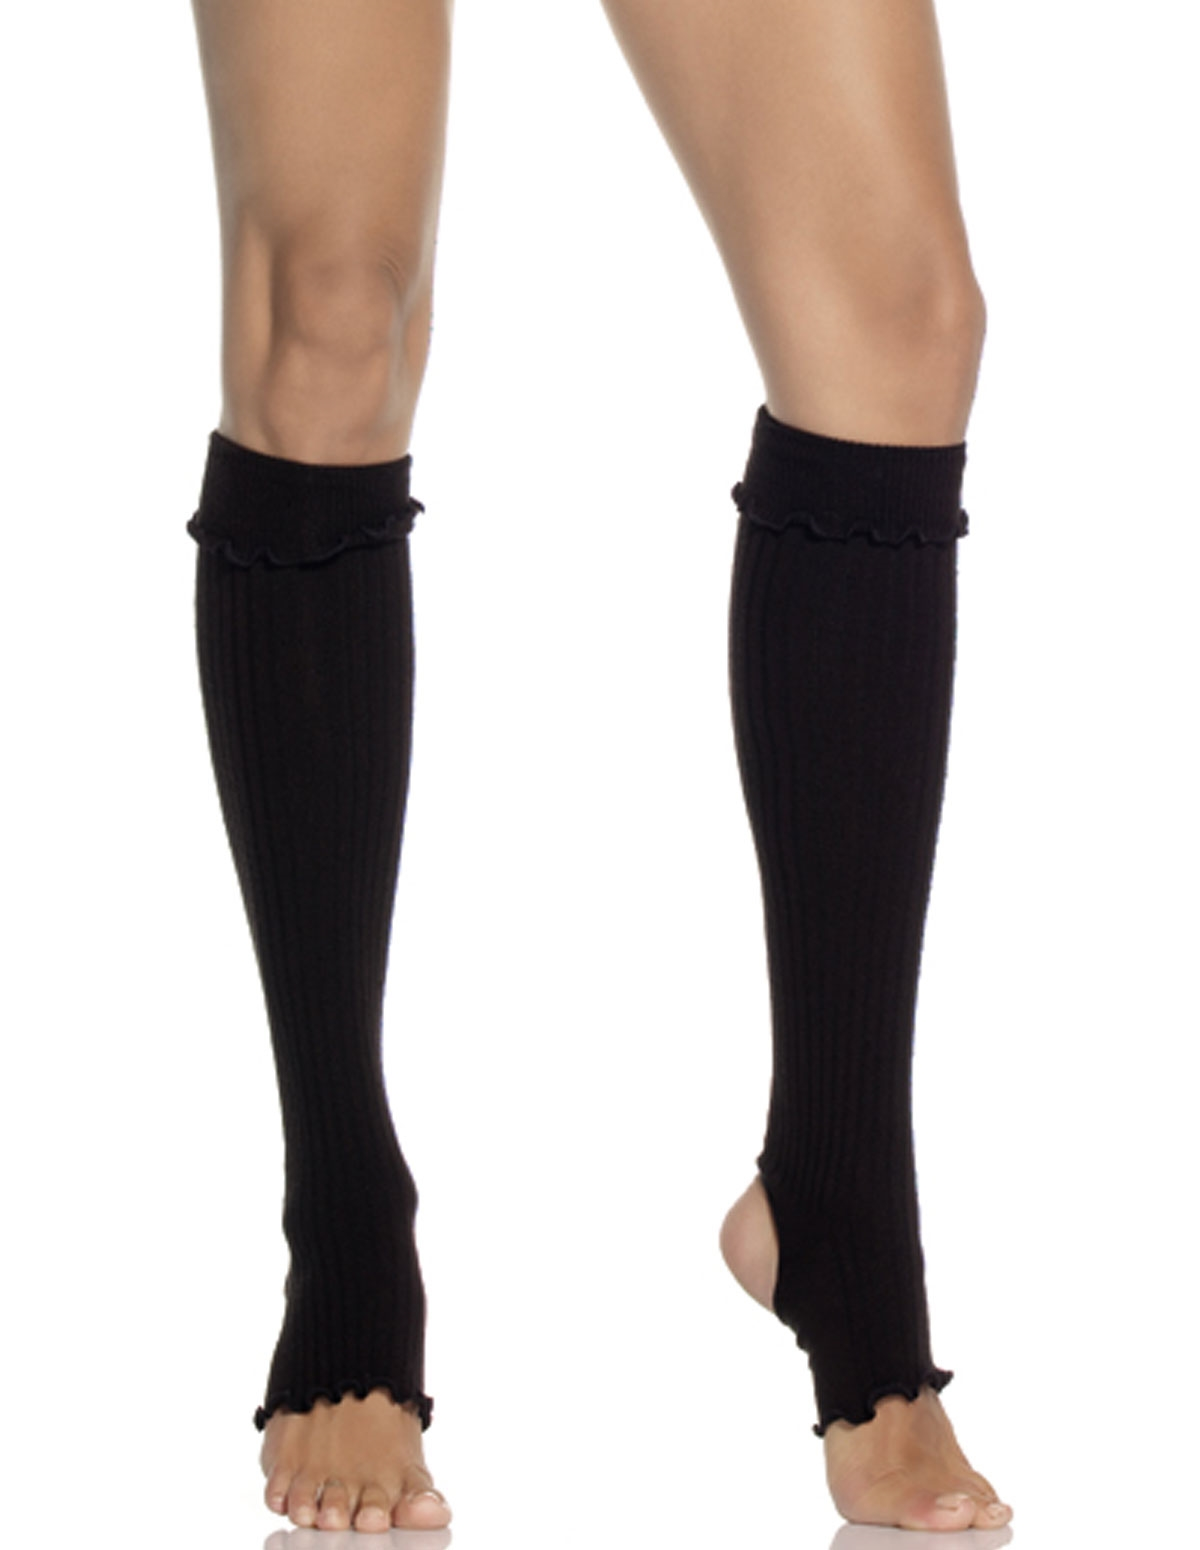 Acrylic Ribbed Stirrup Leg Warmers